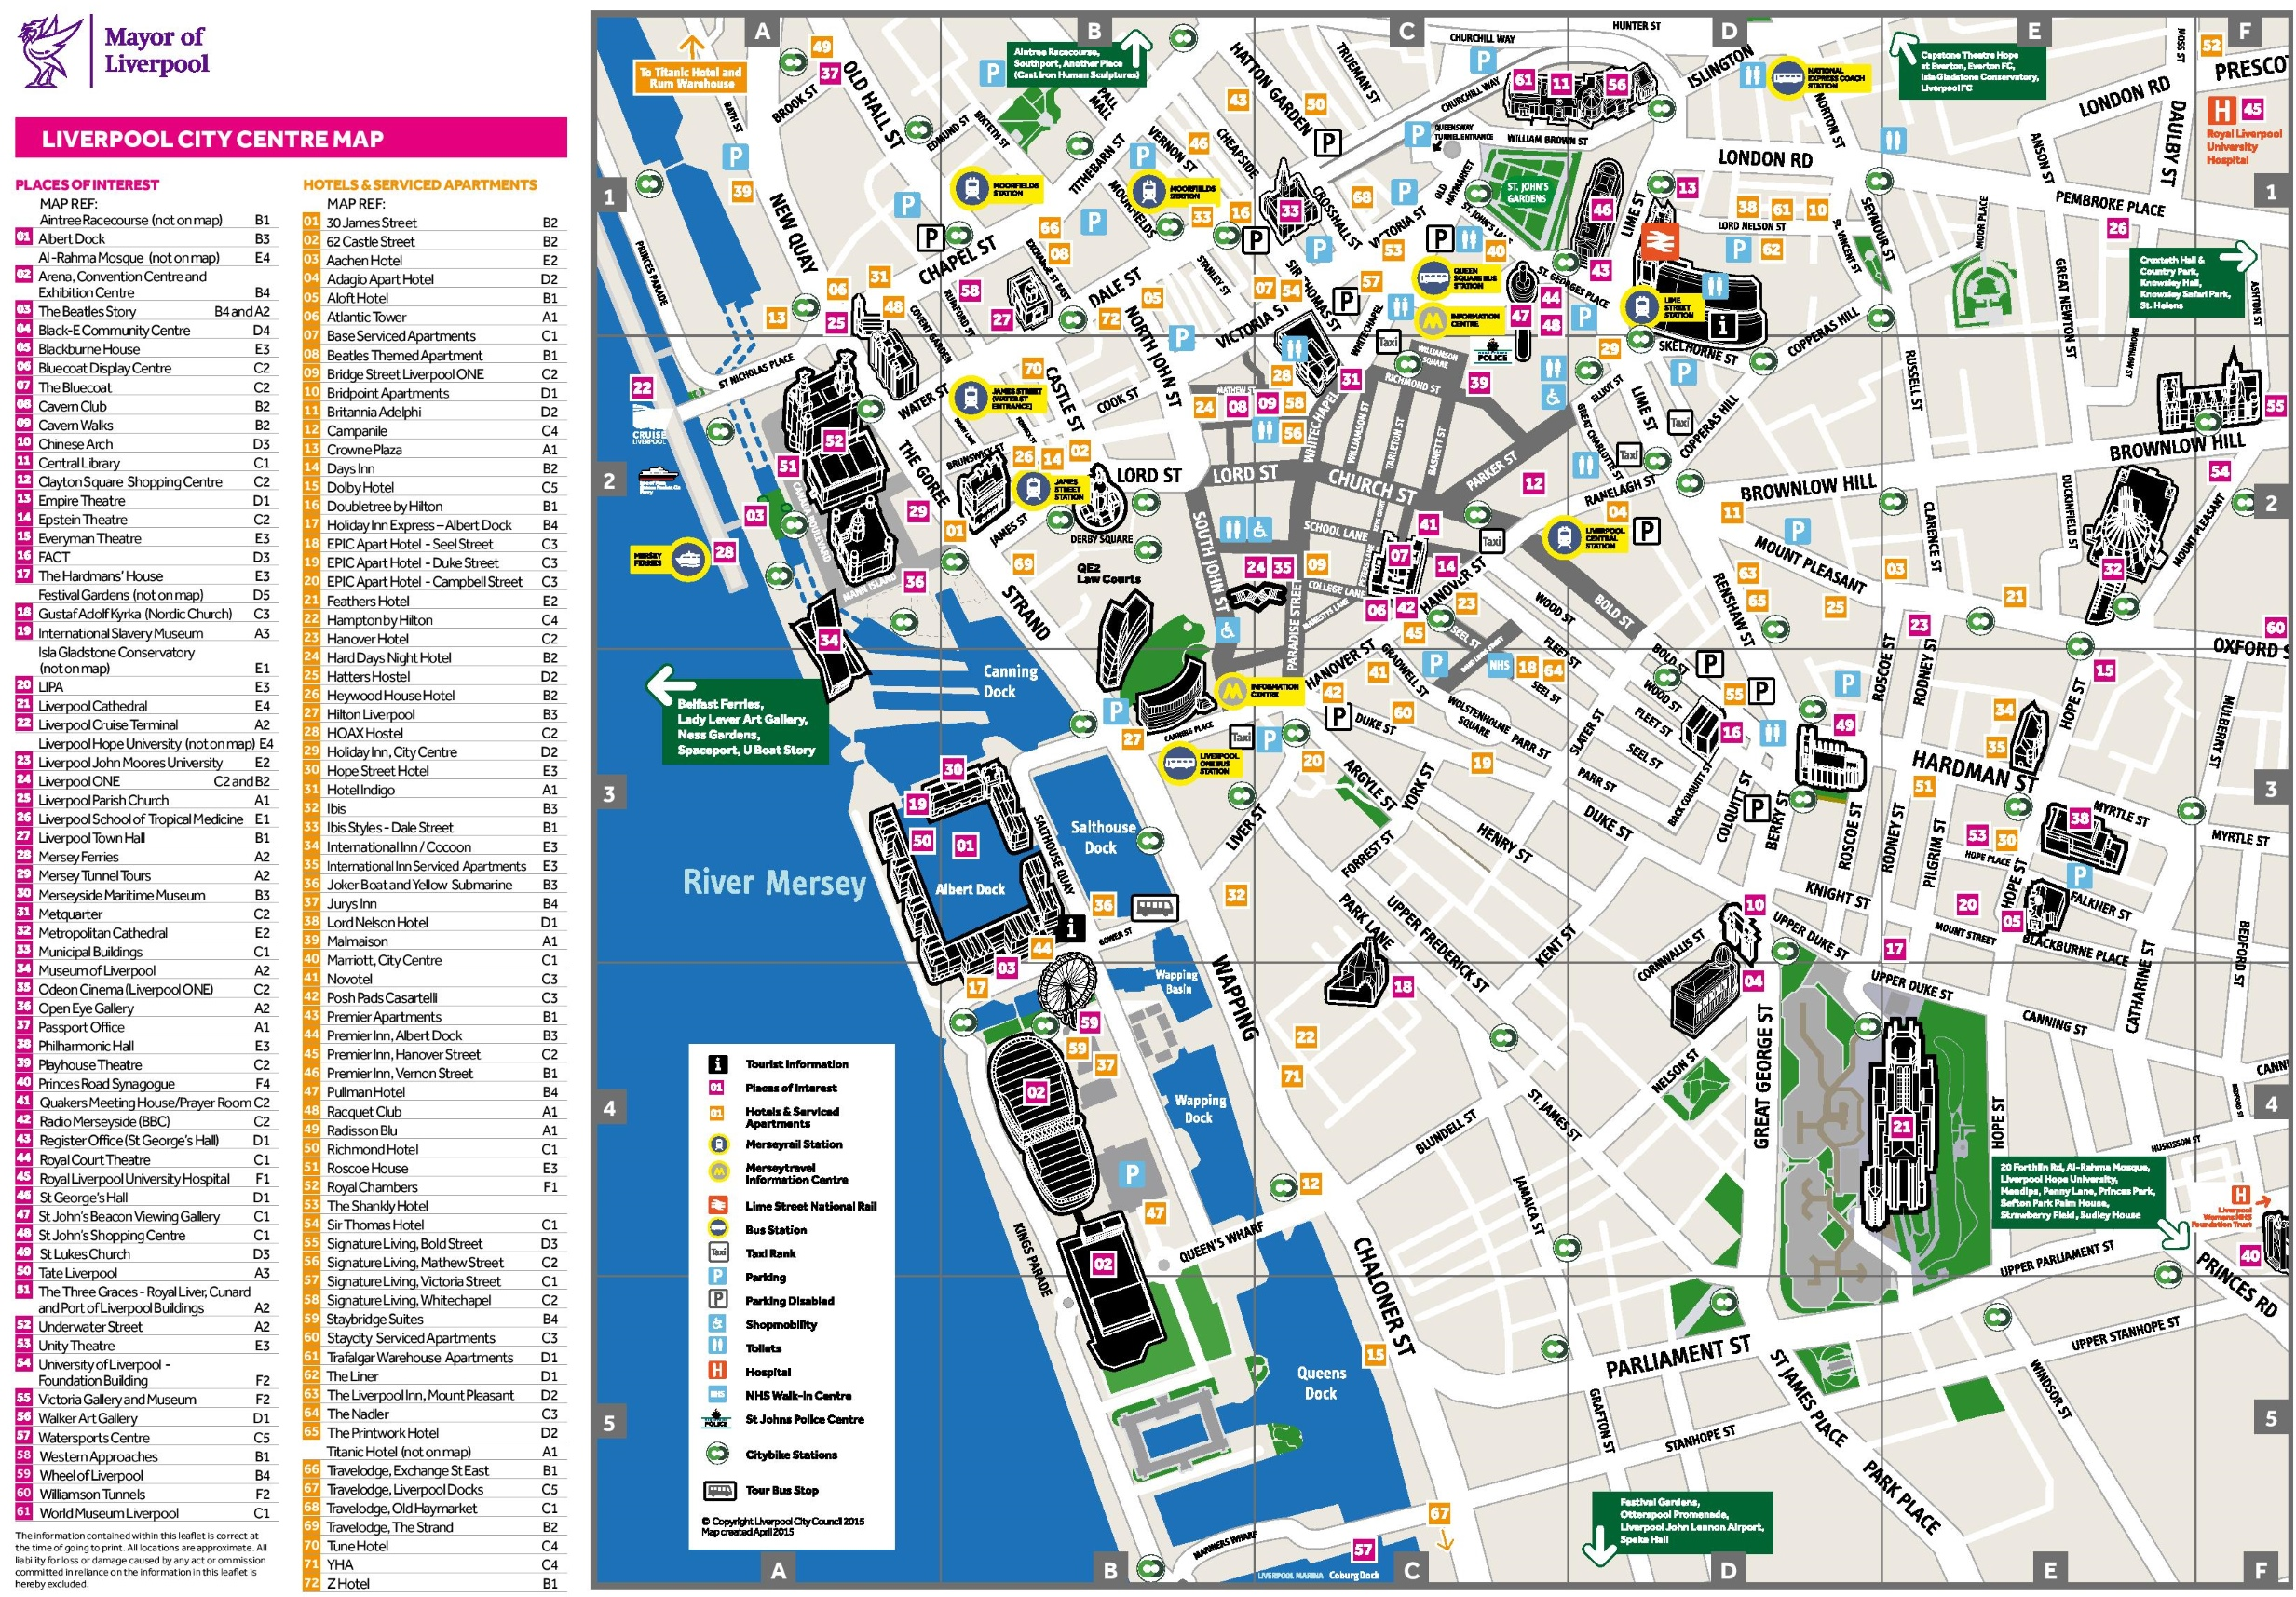 Liverpool University Map Liverpool hotel map Liverpool University Map